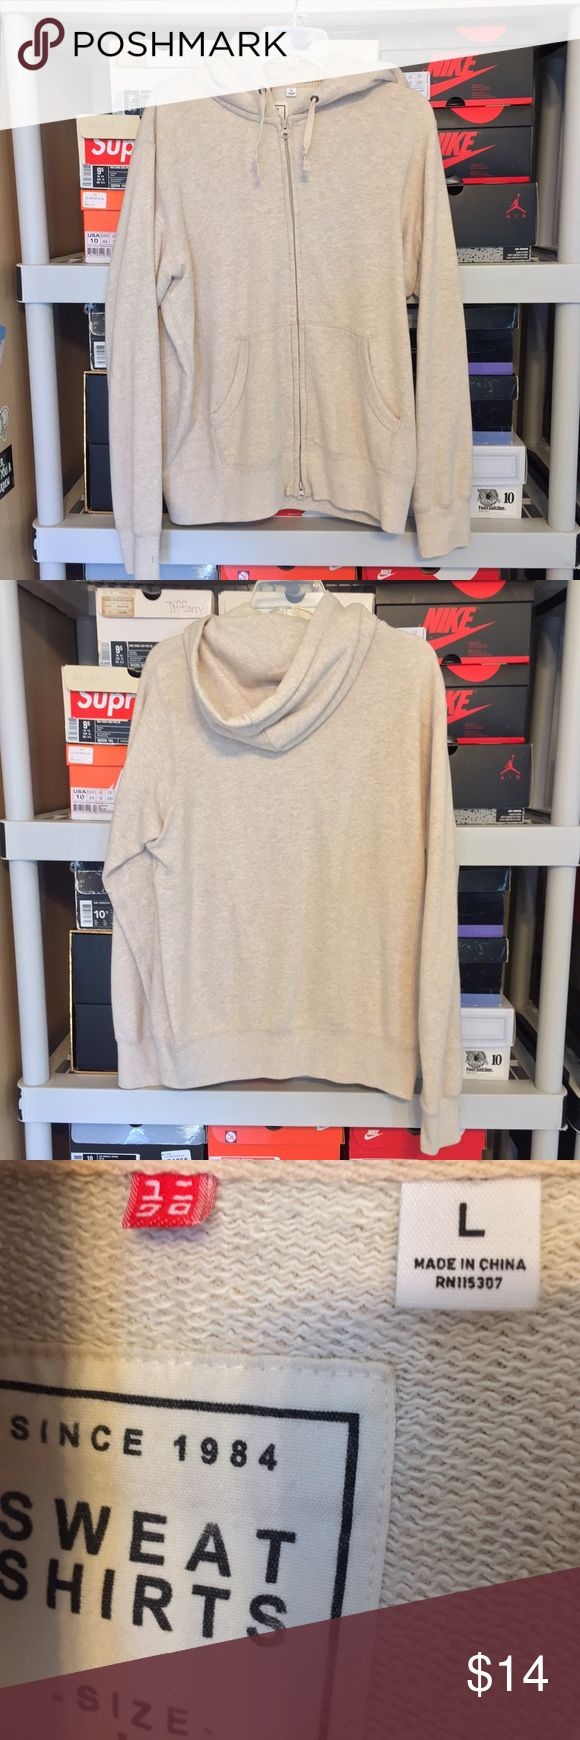 Mens Uniqlo Beige Zip up Hoodie Size Large Mens Uniqlo Beige/Offwhite Zipup Hoodie  This sweater is preowned but in good condition! The only flaw is a small pull/hole in the front as shown in photos.   Size large Uniqlo Sweaters Zip Up